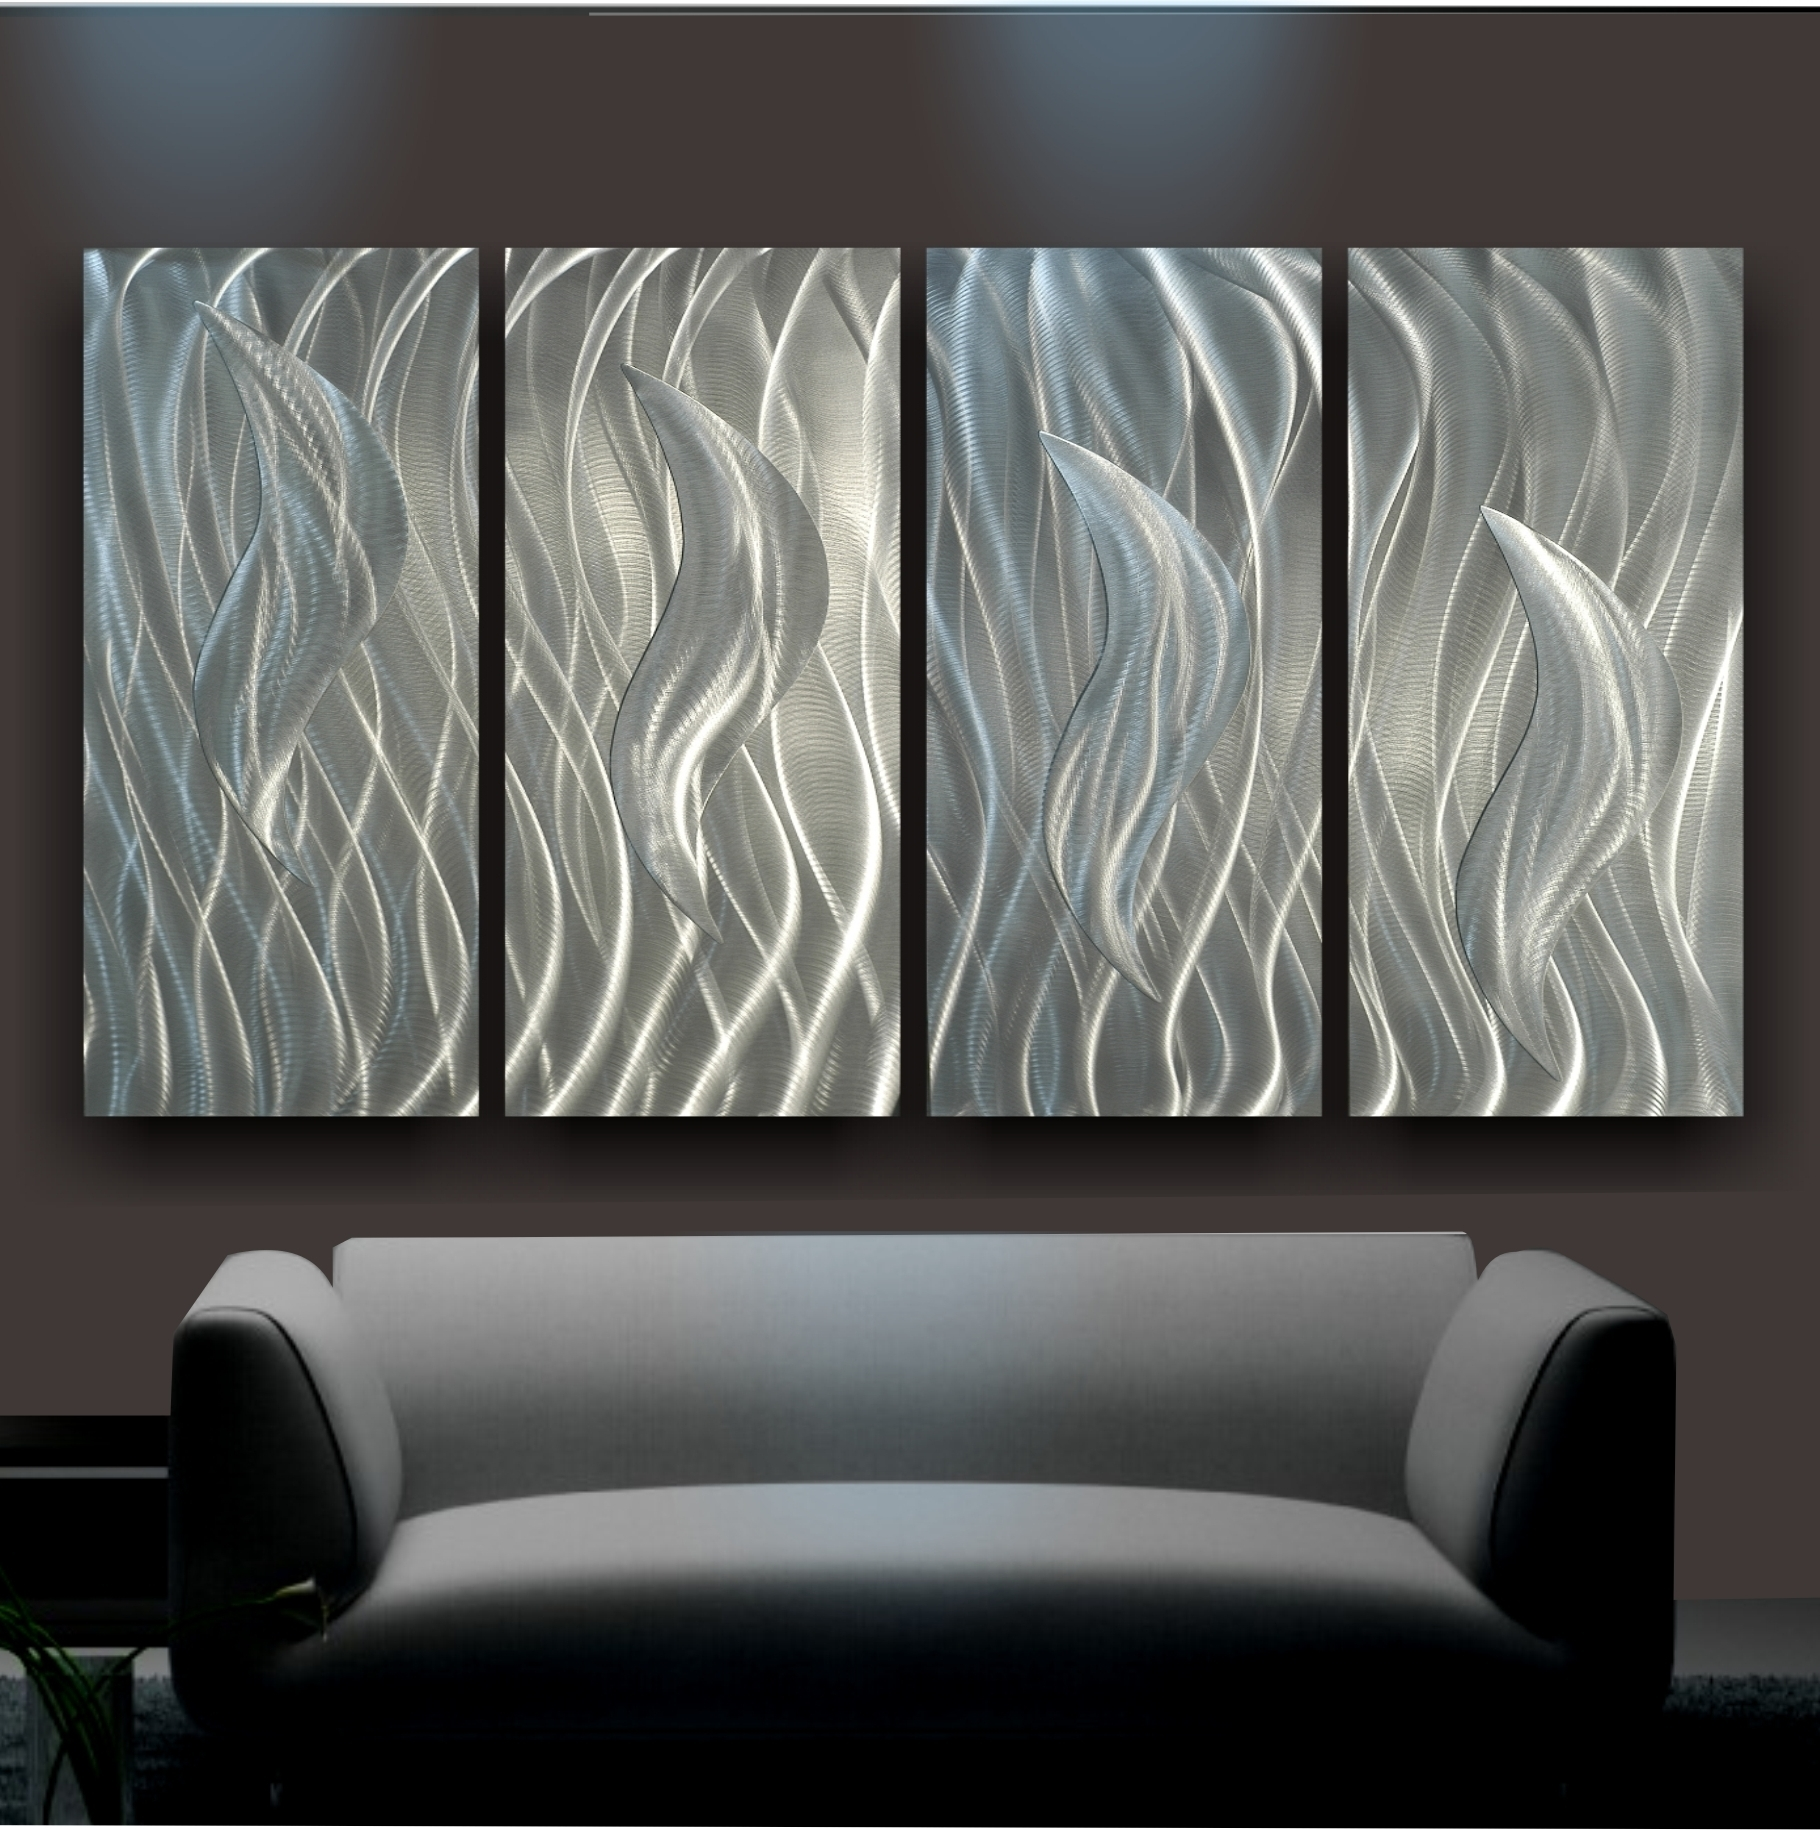 Steel Wall Surface Fine Art Is A Contemporary Sort Of Art Work Throughout Most Recent Abstract Aluminium Wall Art (View 16 of 20)